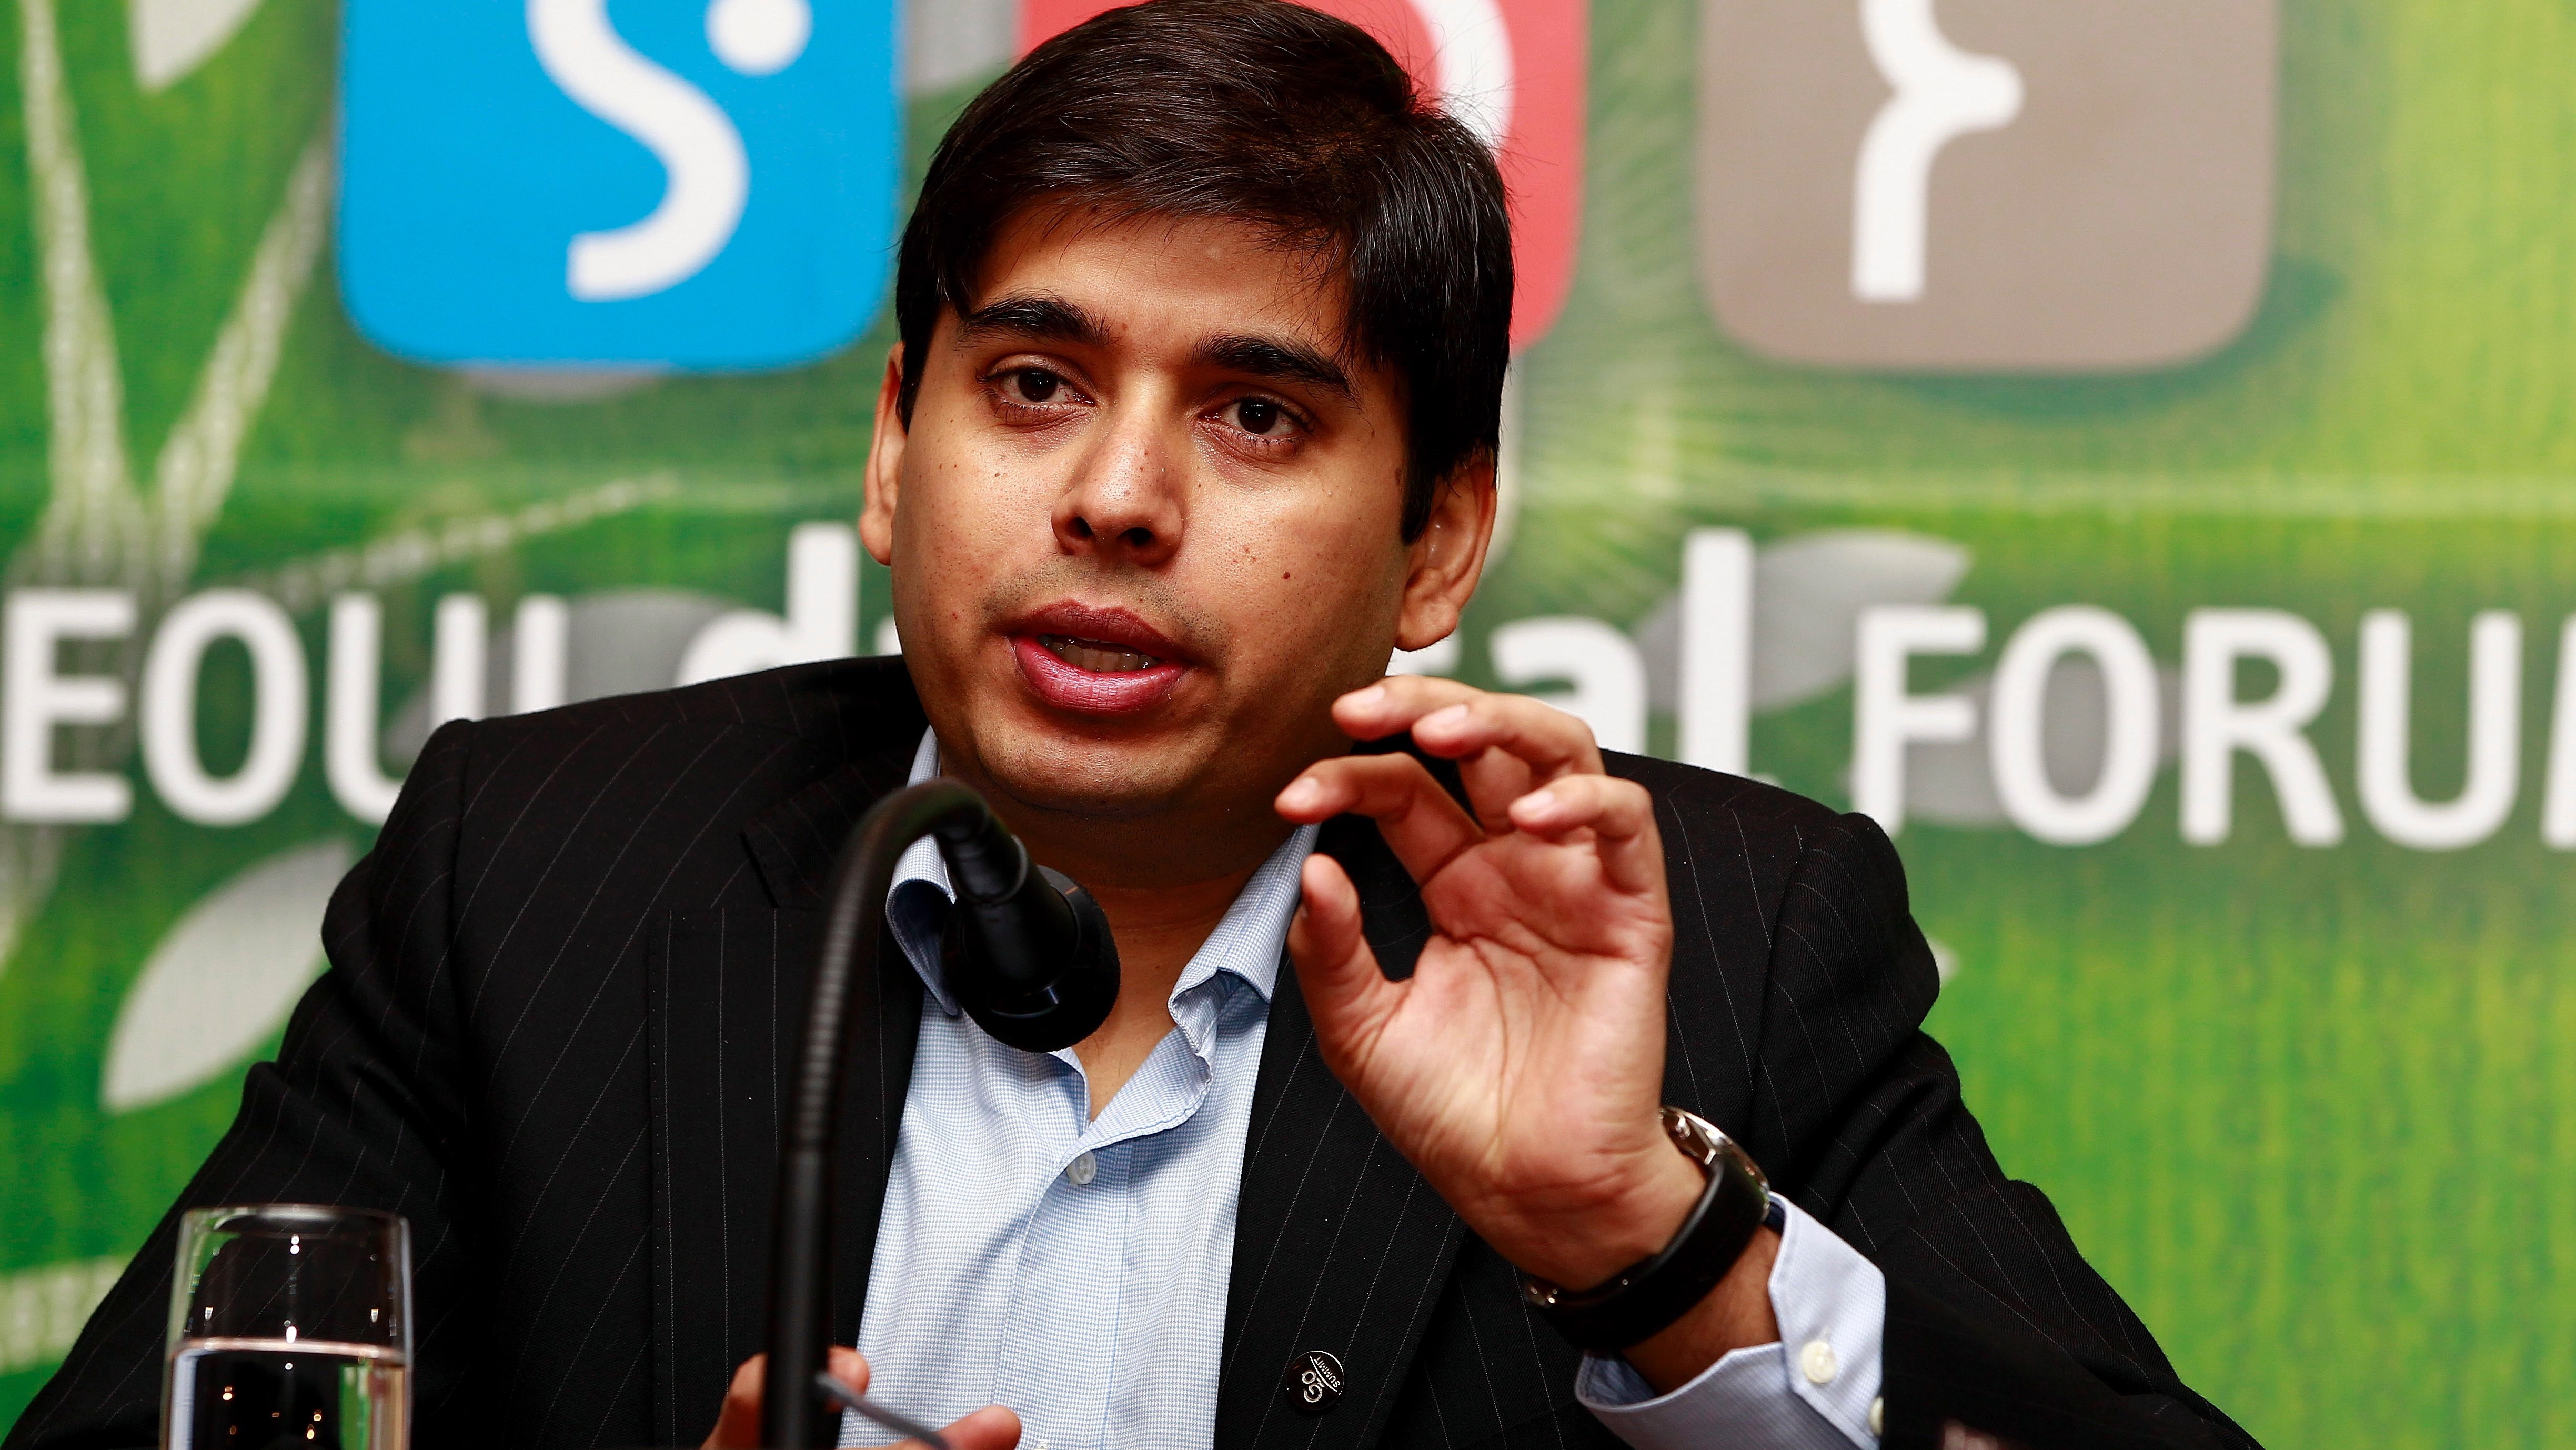 epa03230954 Naveen Tewari, Founder & CEO of InMobi, speaks during the presentation 'Bring Companies & Consumers Together Through the Mobile Ecosystem' at the Seoul Digital Forum on Sheraton Grande Walkerhill Hotel in Seoul, South Korea, 23 May 2012. The Seoul Digital Forum under the theme 'Coexistence-Technology, Humanity and Great Hope for the Future' is held from 22 until 24 May.  EPA/JEON HEON-KYUN